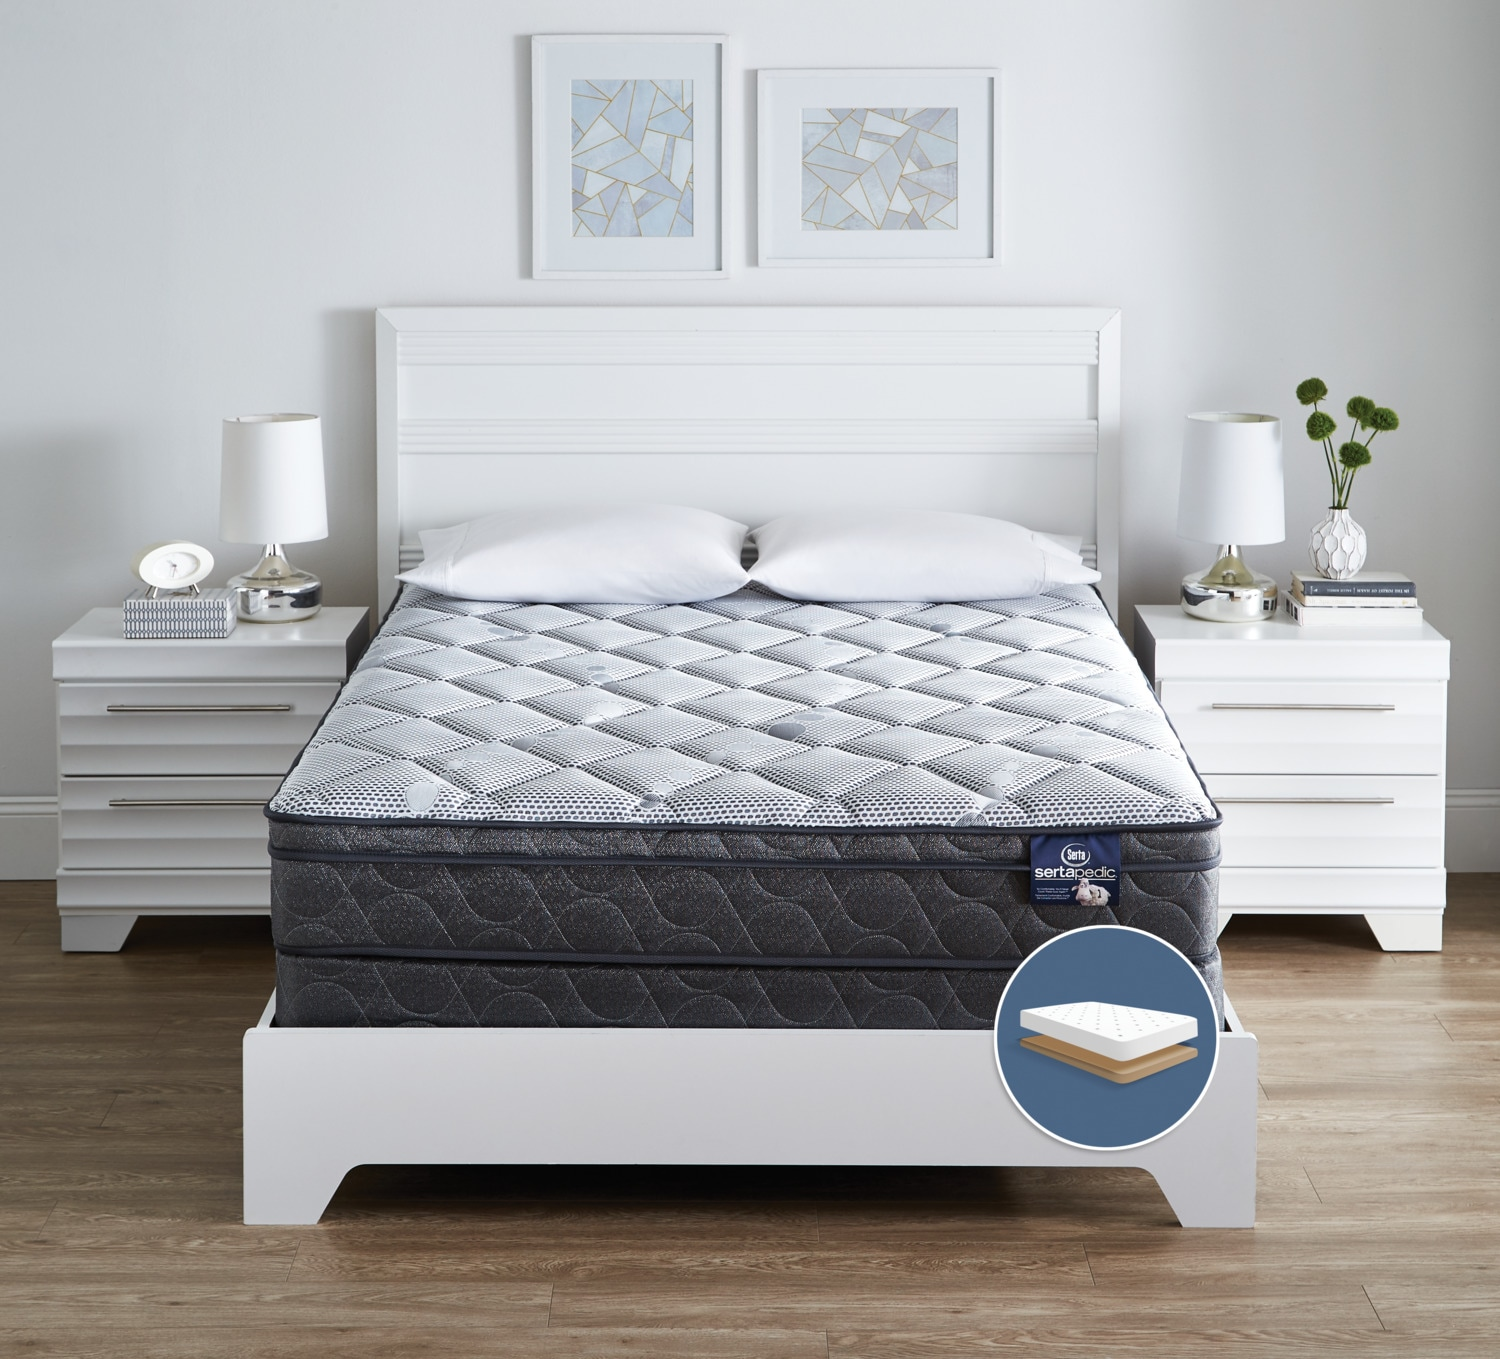 Ensemble matelas ferme euro plateau profil bas luxury for Matelas queen liquidation